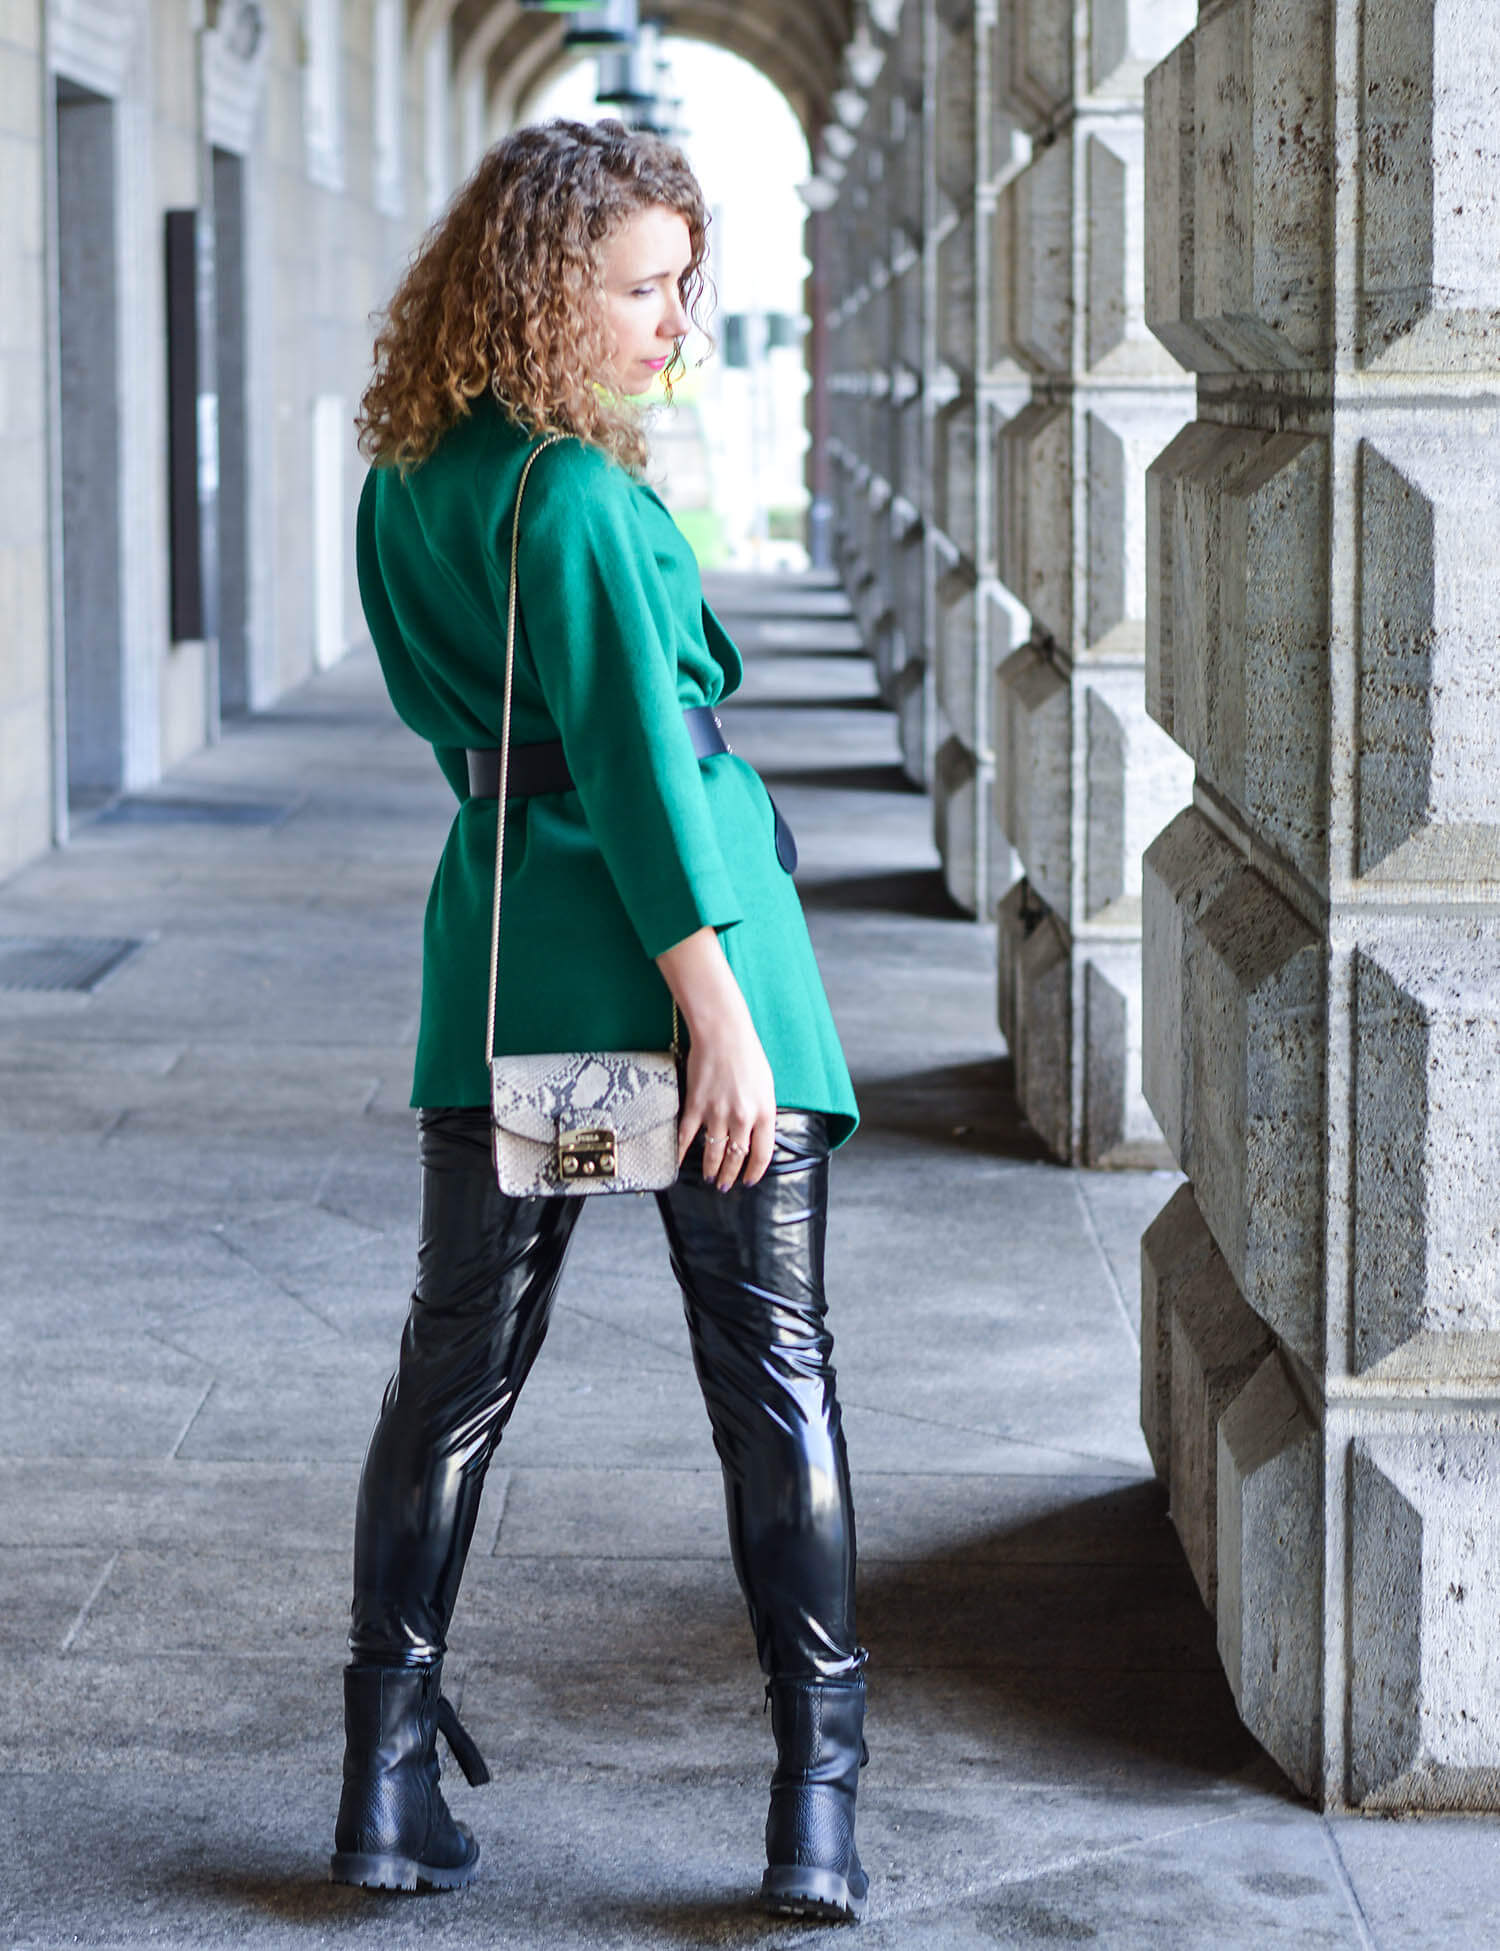 Outfit-Green-Cardigan-with-Gucci-Belt-Vinyl-Pants-and-New-Boots-kationette-streetstyle